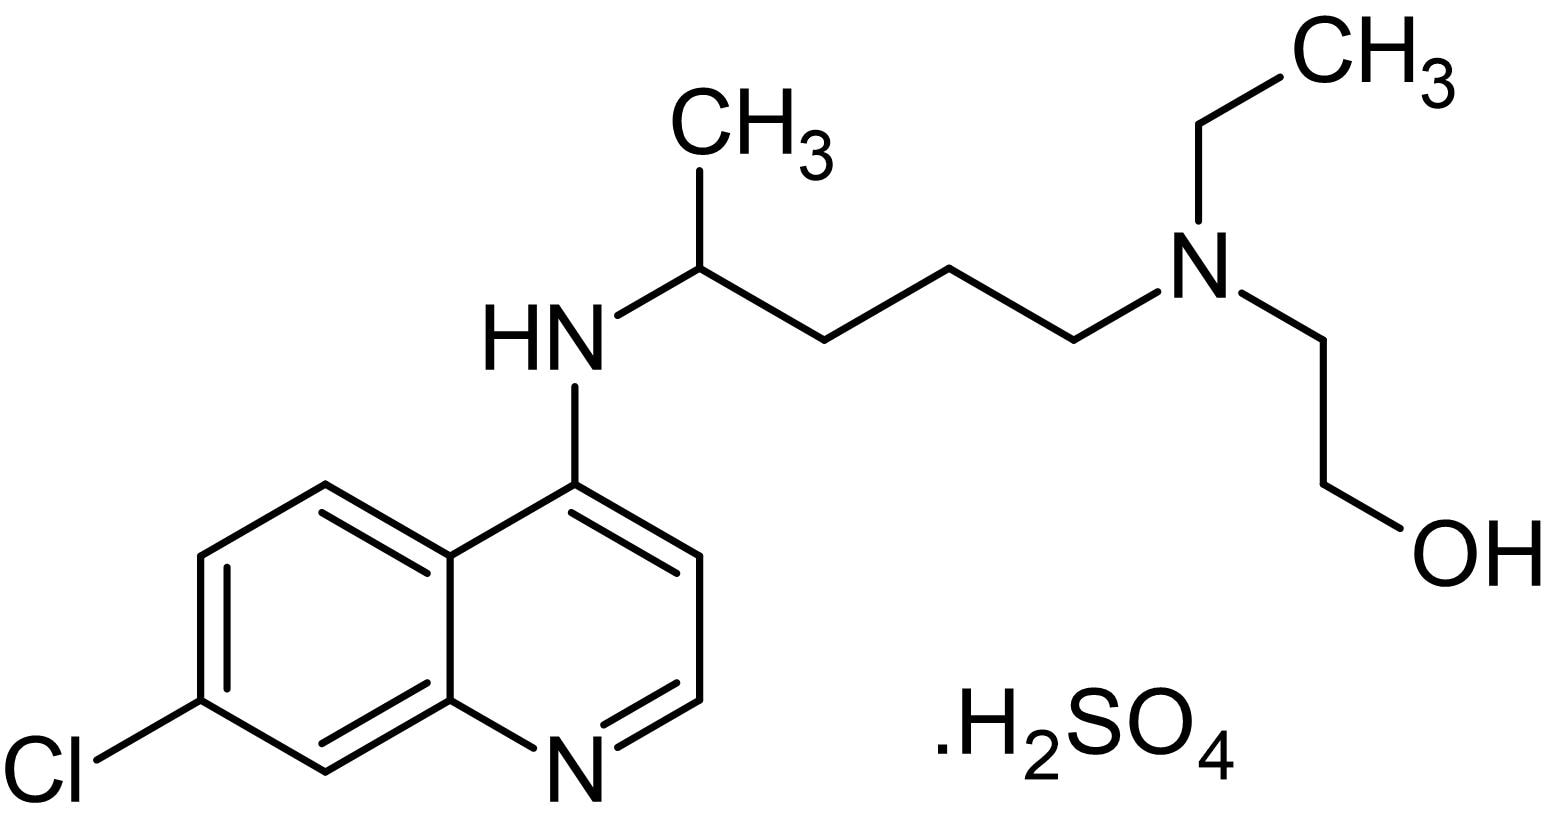 Chemical Structure - Hydroxychloroquine sulfate, Anti-inflammatory and antimalarial agent (ab120827)